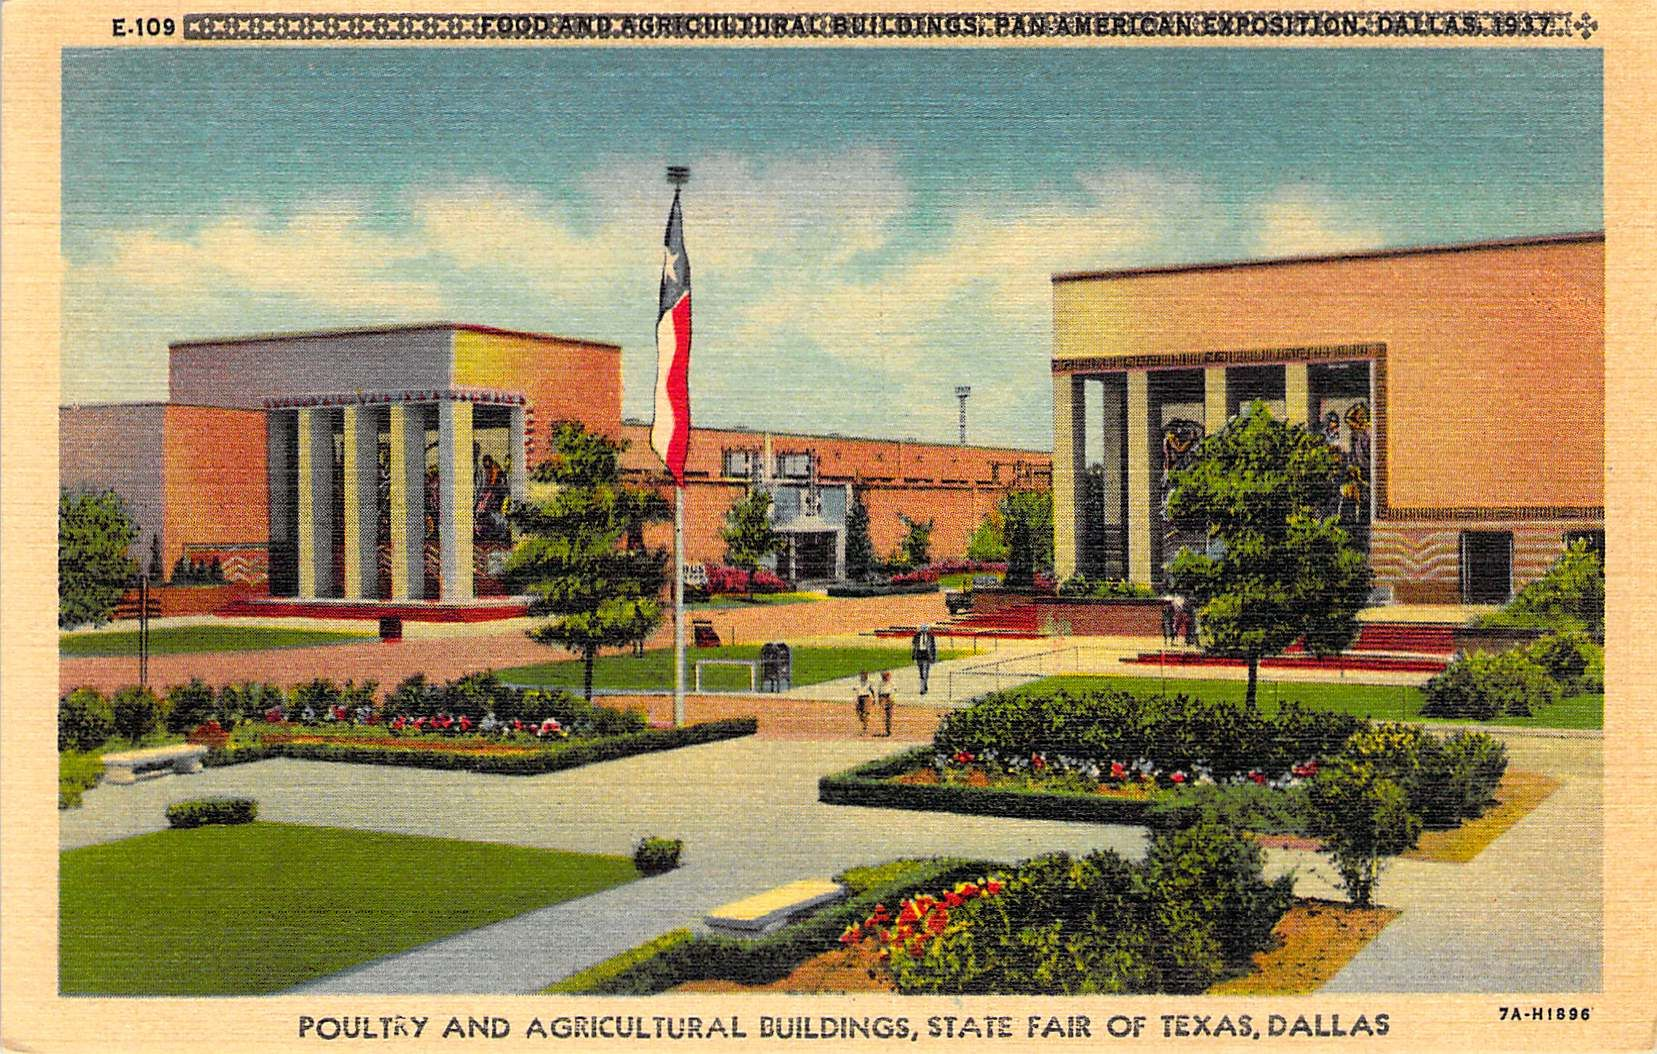 Poultry and Agricultural Buildings, State Fair of Texas